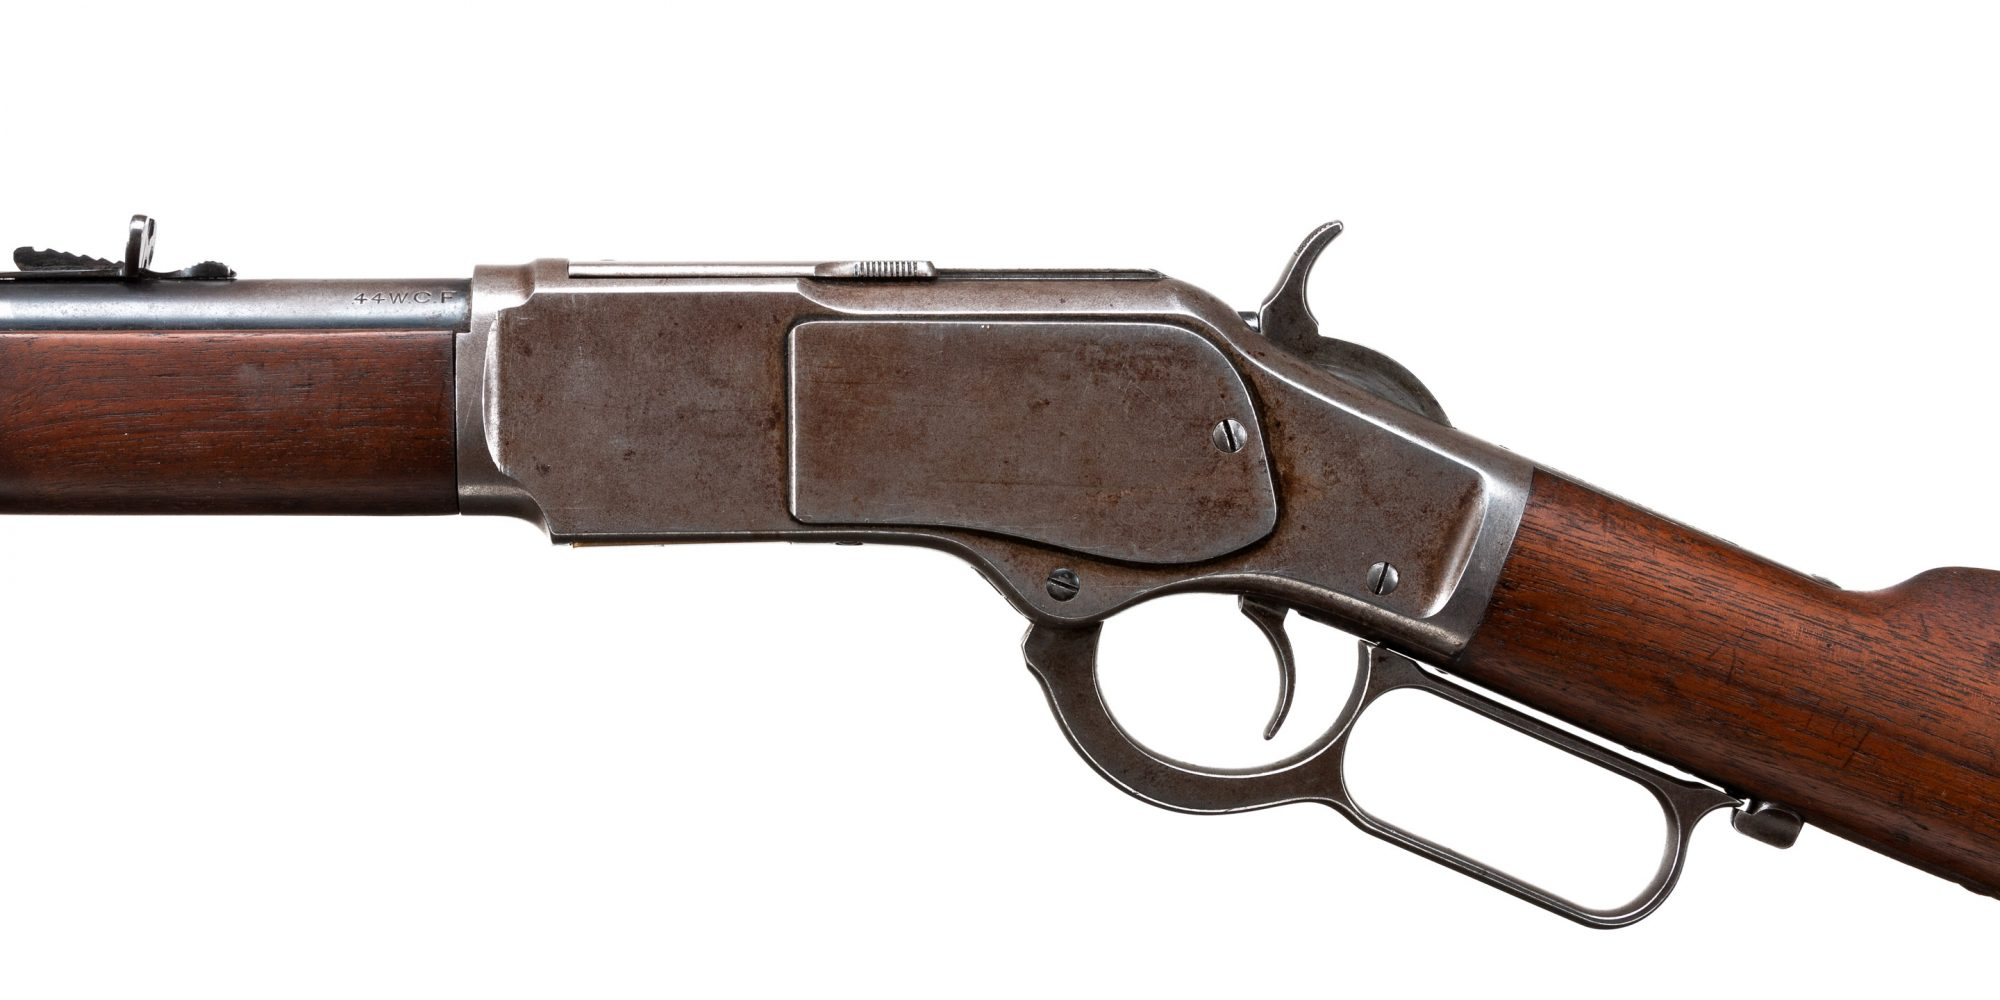 Photo of a pre-owned Winchester Model 1873, for sale through Turnbull Restoration